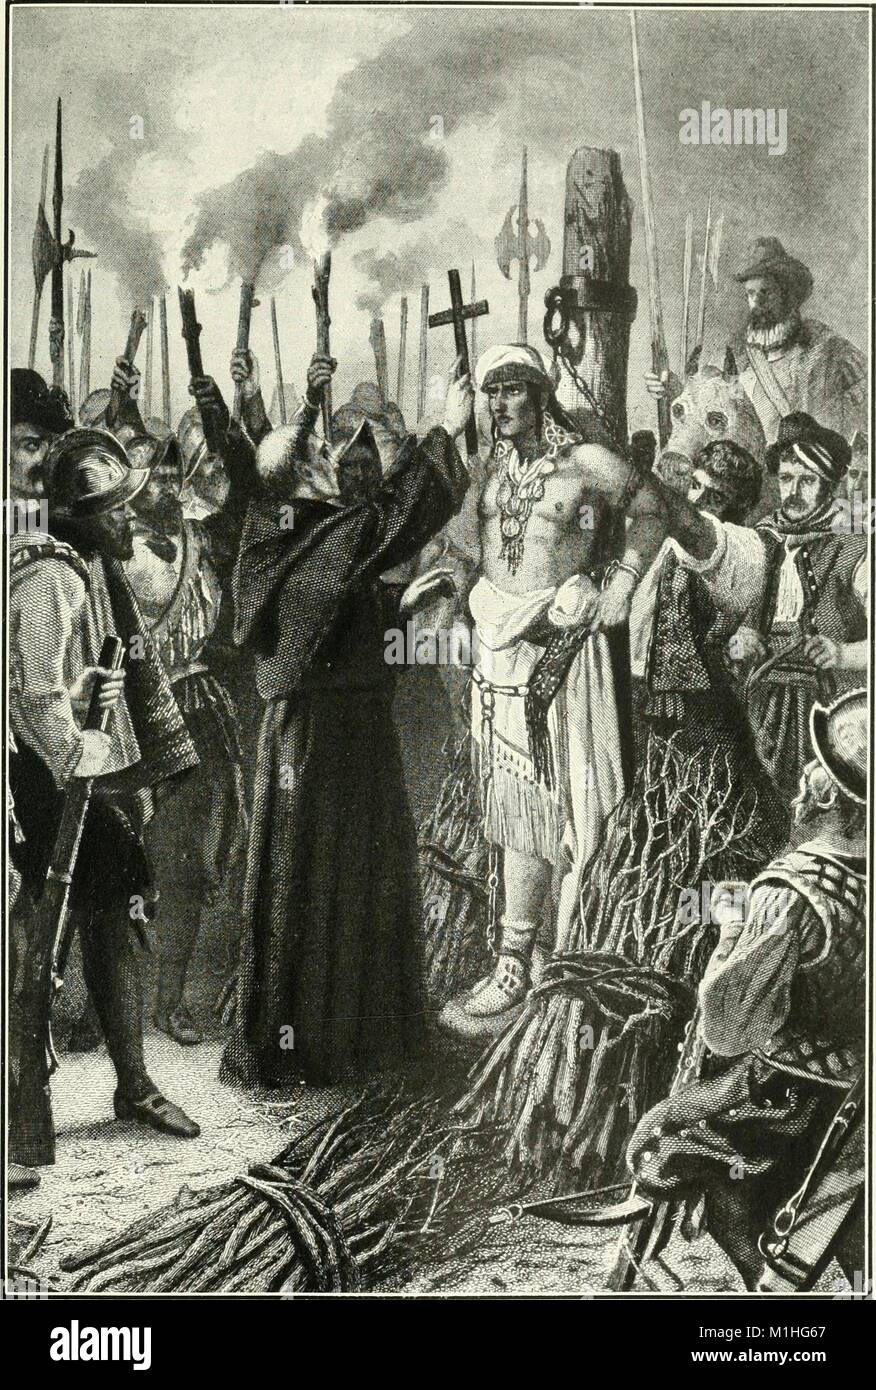 Black and white illustration, by artist Alonzo Chappell, depicting the Spanish soldier Pizarro about to burn the - Stock Image